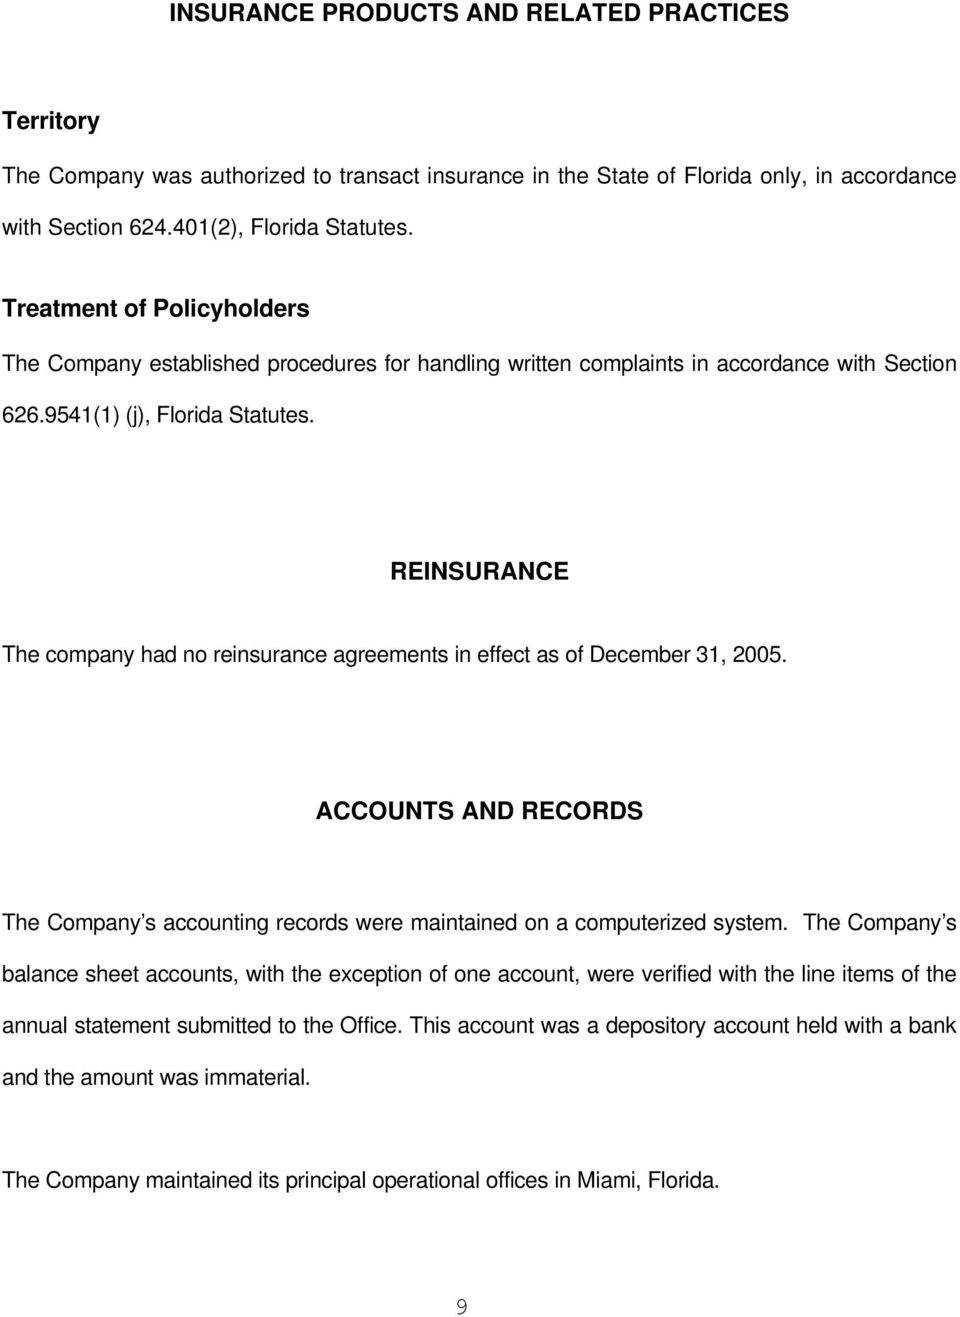 REINSURANCE The company had no reinsurance agreements in effect as of December 31, 2005. ACCOUNTS AND RECORDS The Company s accounting records were maintained on a computerized system.